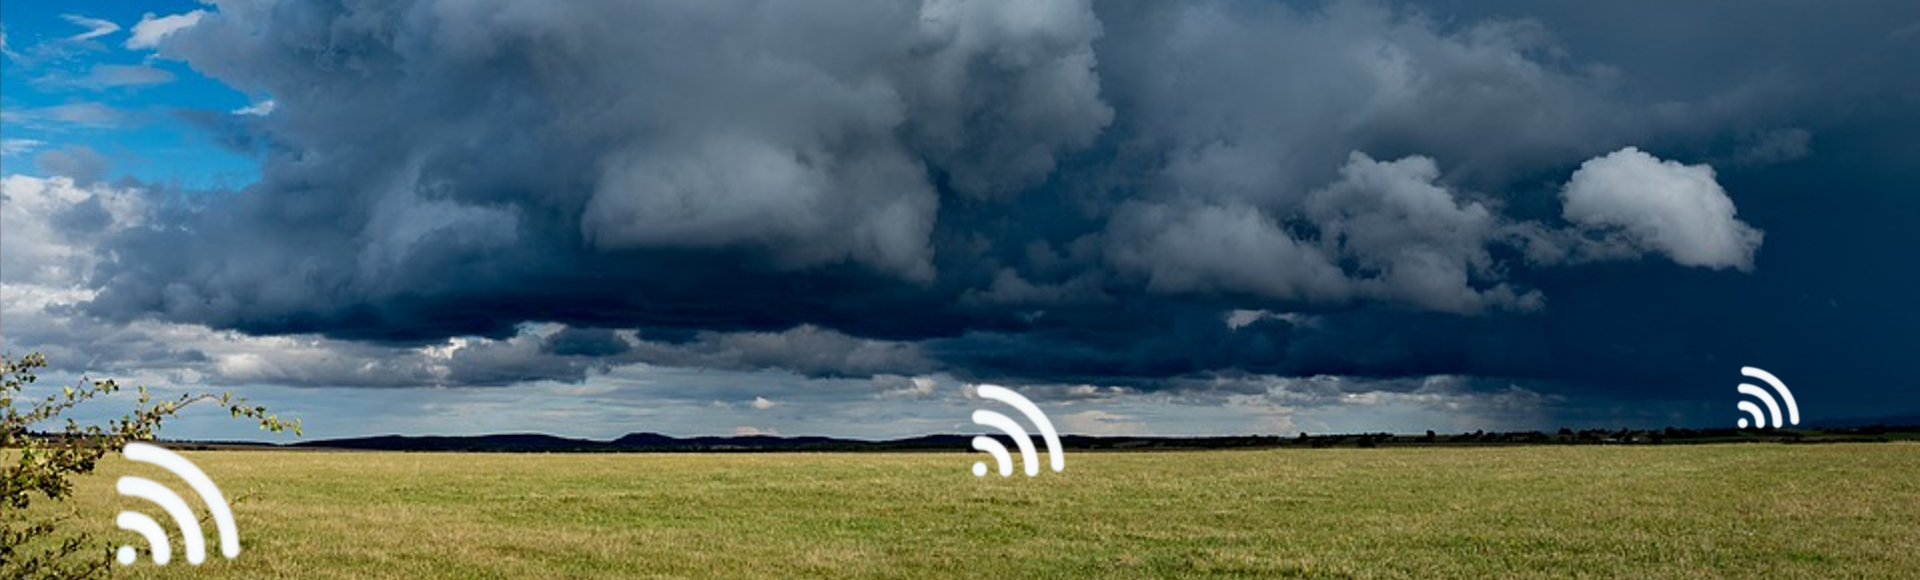 NB-IoT for Smart Warning Systems for Extreme Weather